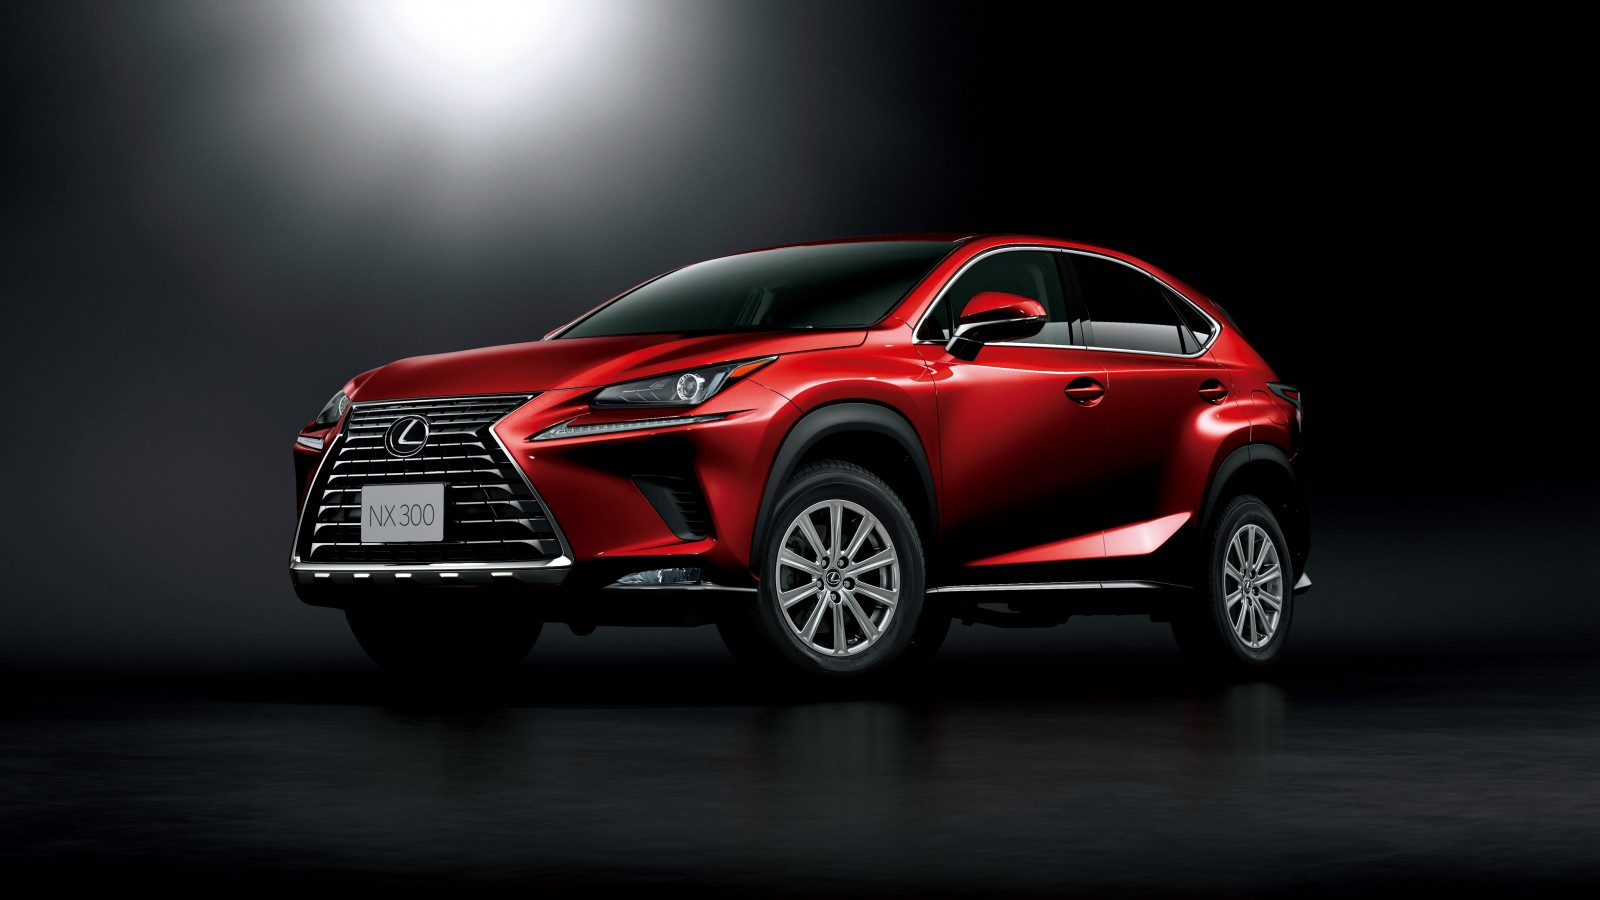 Widescreen Car Wallpapers Hd 2018 Lexus Nx 300 4k Wallpaper Hd Car Wallpapers Id 8675